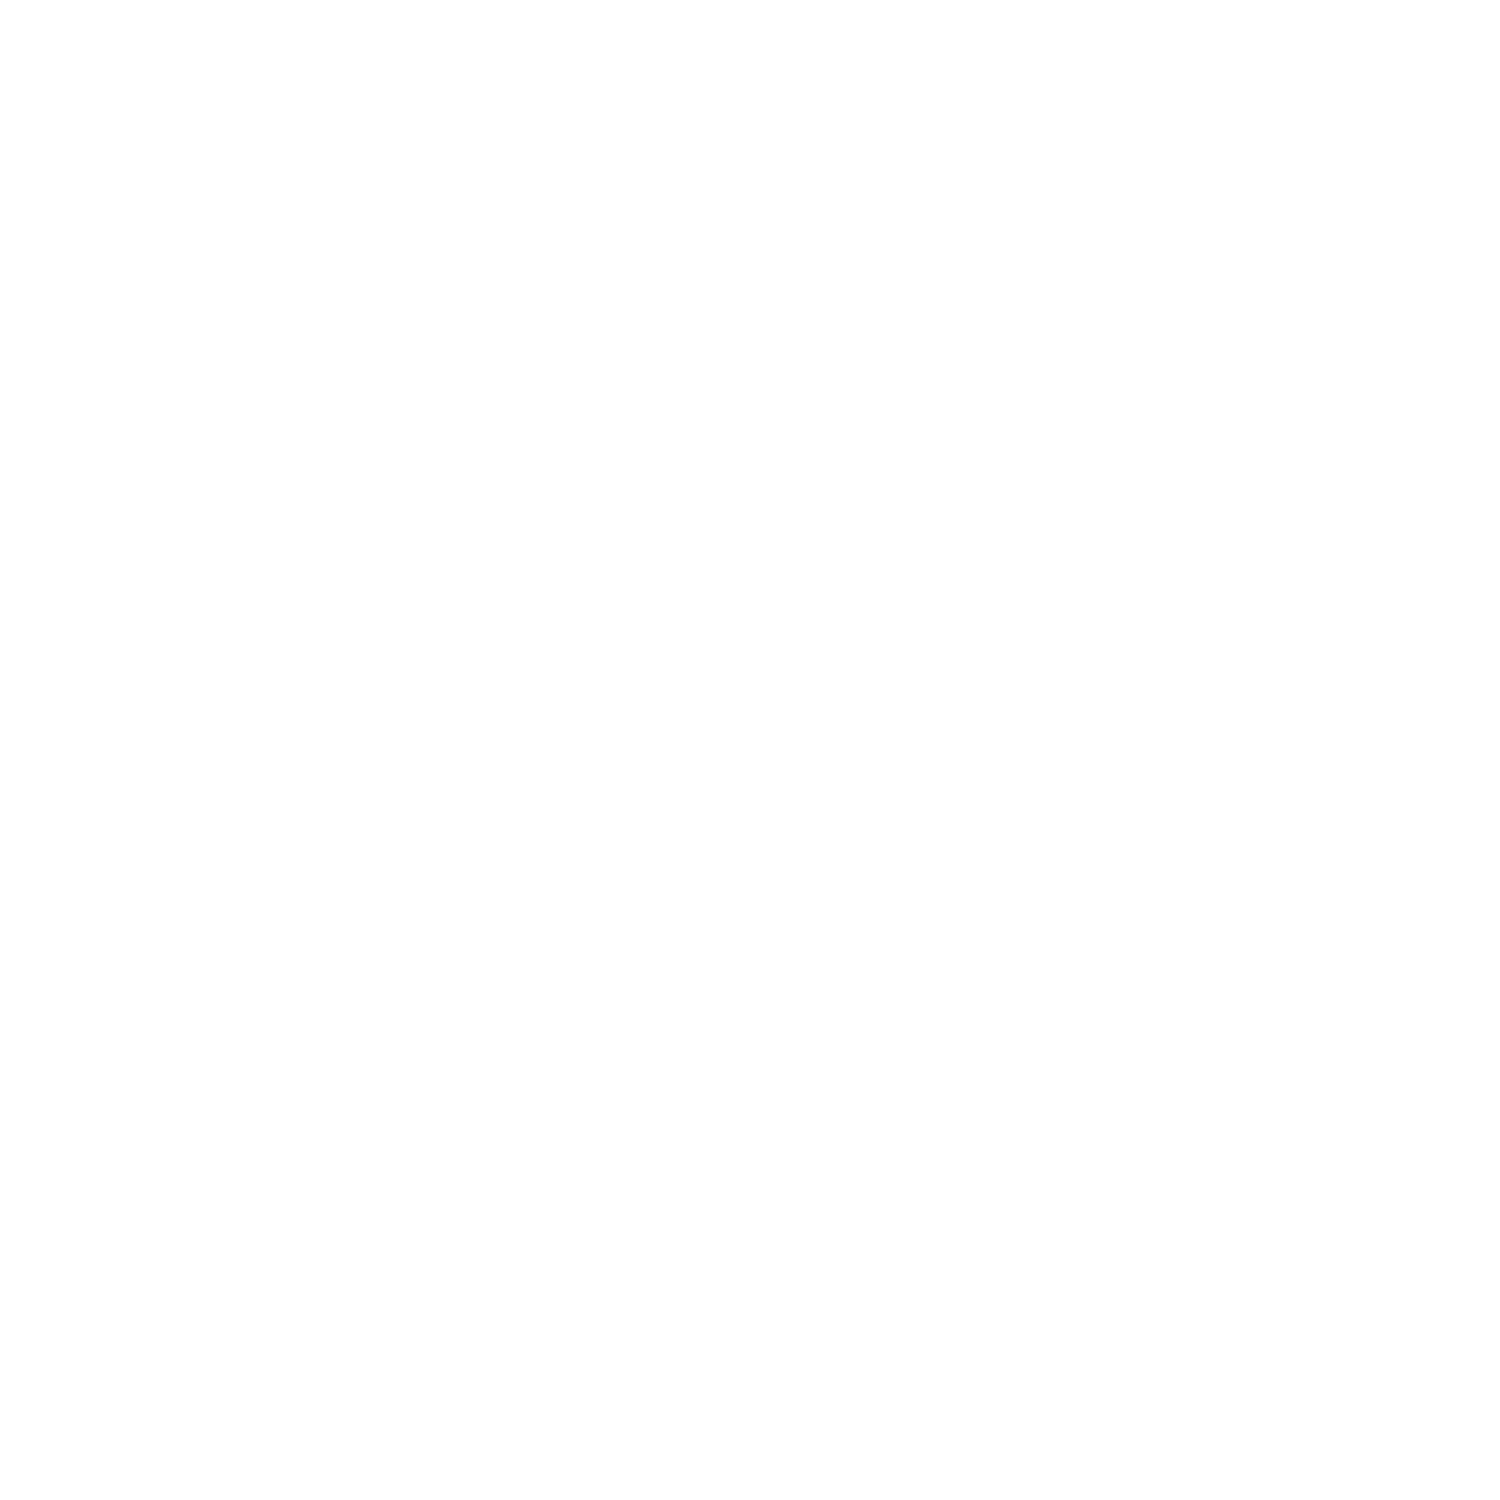 Hanseatic Ski Race King's Lynn